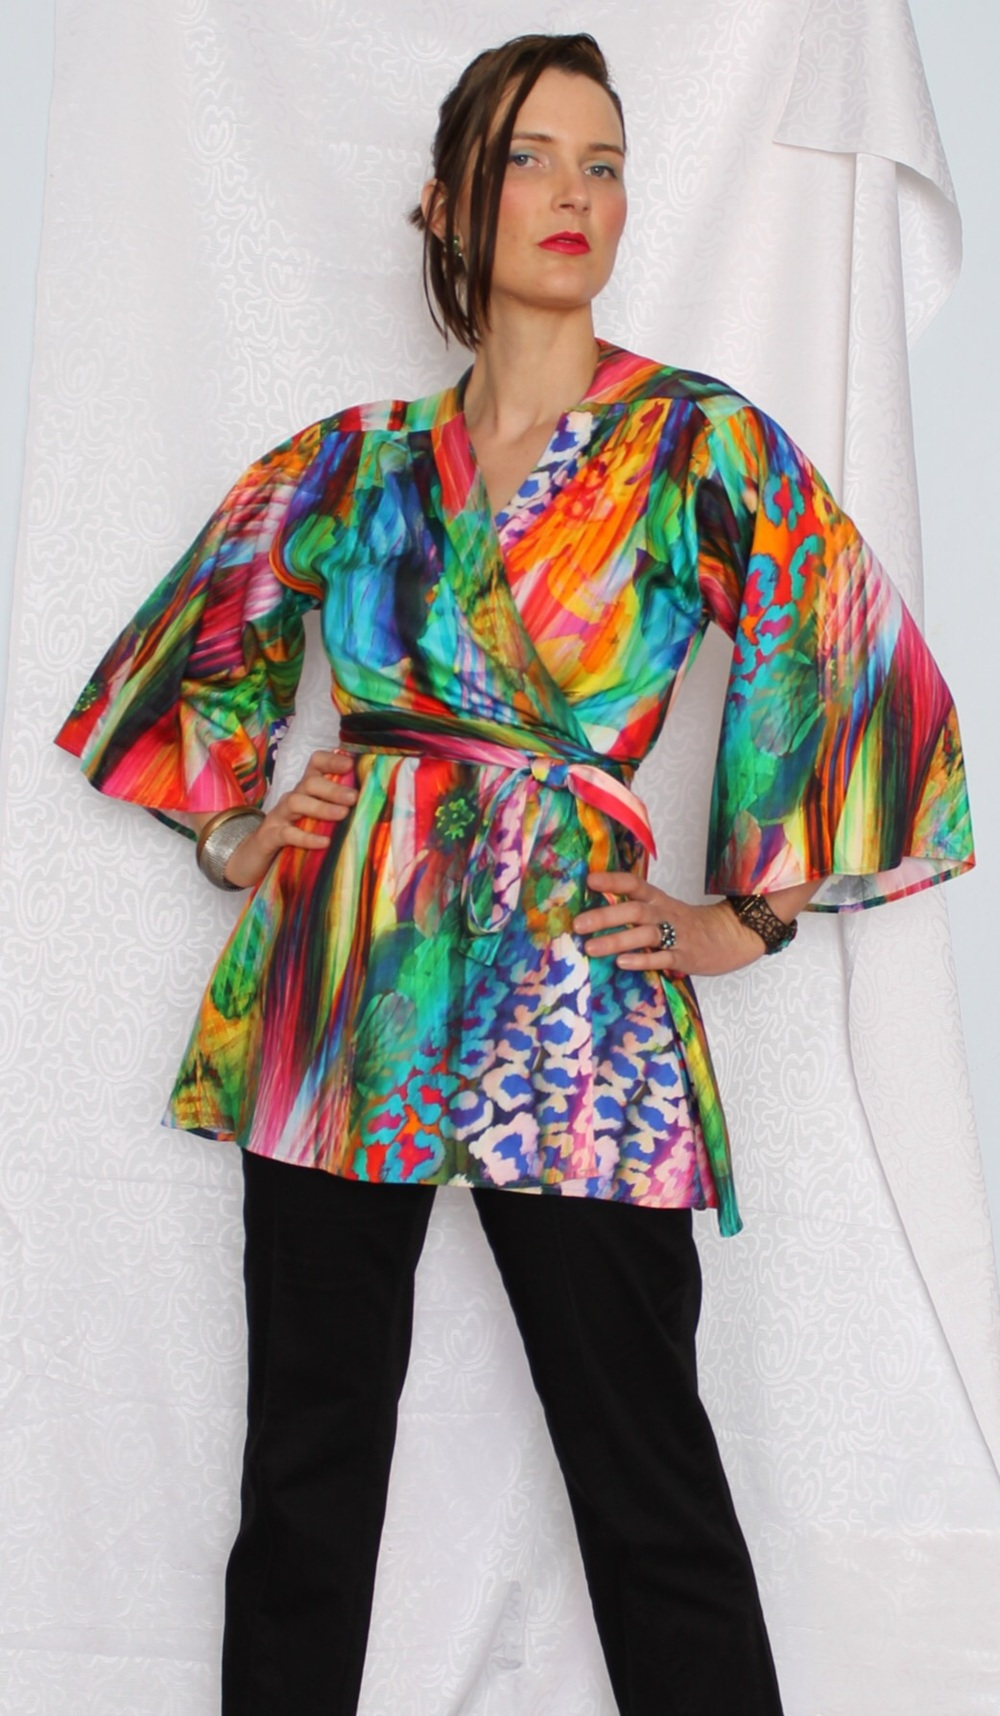 The Bright Kaleidoscope kimono worn here with black pants.